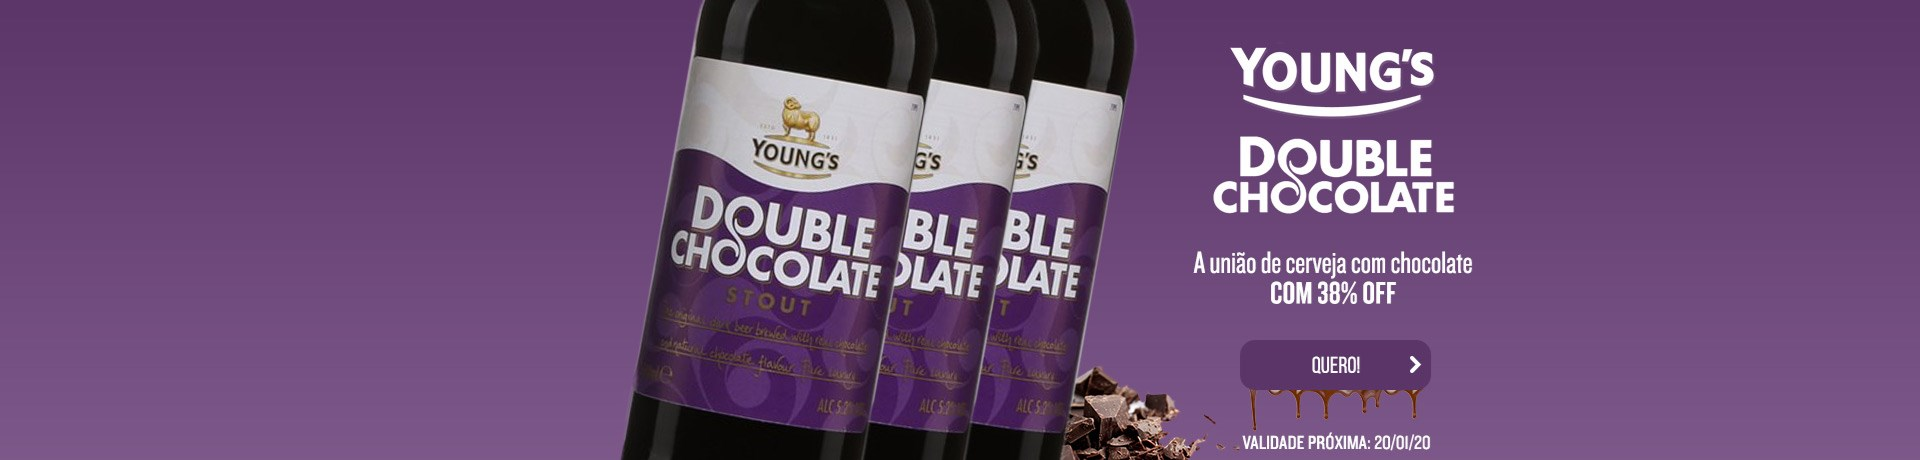 Youngs Double Chocolate - Home Desktop